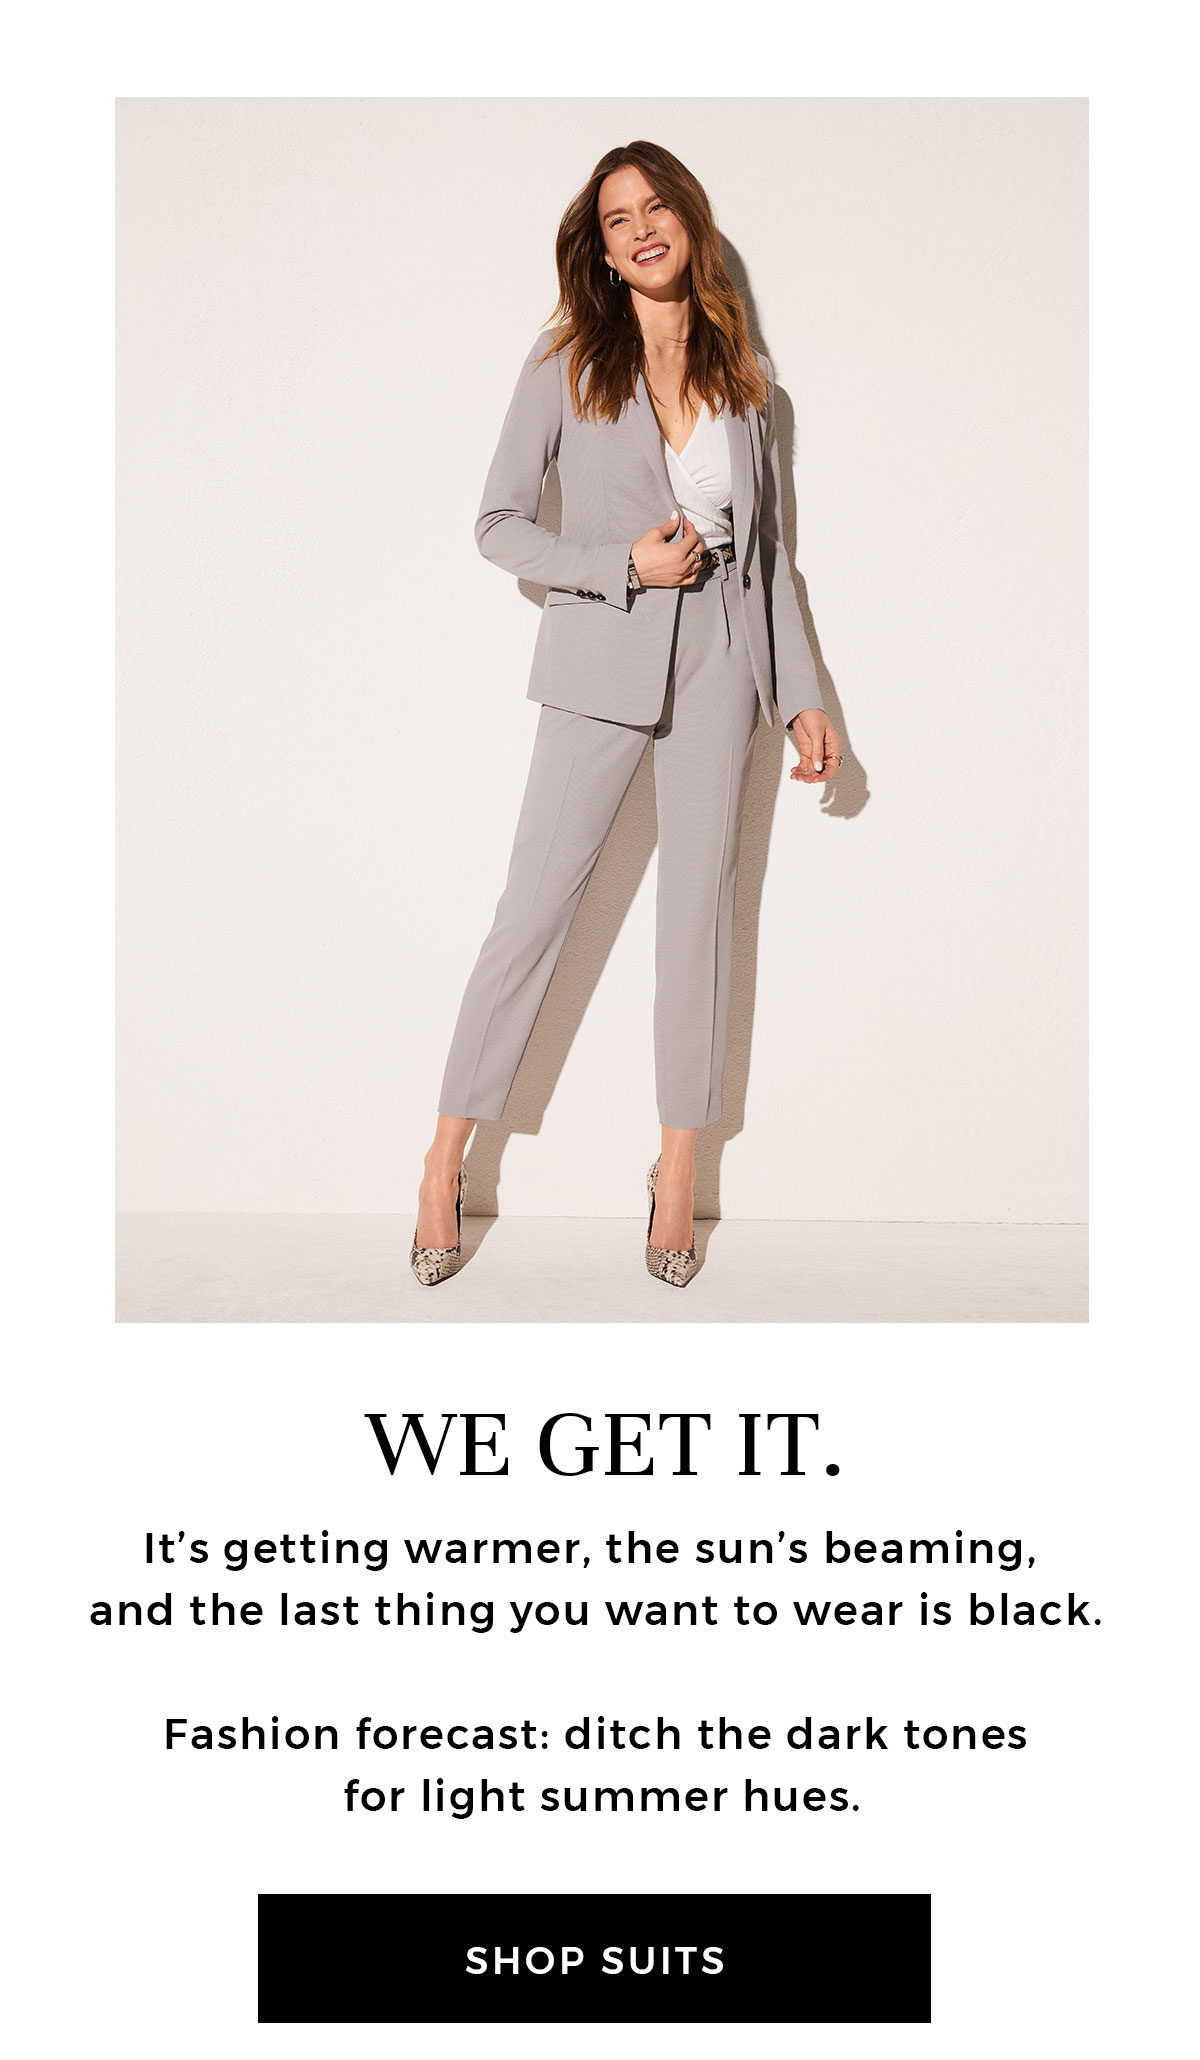 WE GET IT. It's getting warmer, the sun's beaming, and the last thing you want to wear is black. Fashion forecast: ditch the dark tones for light summer hues. CTA: Shop suits